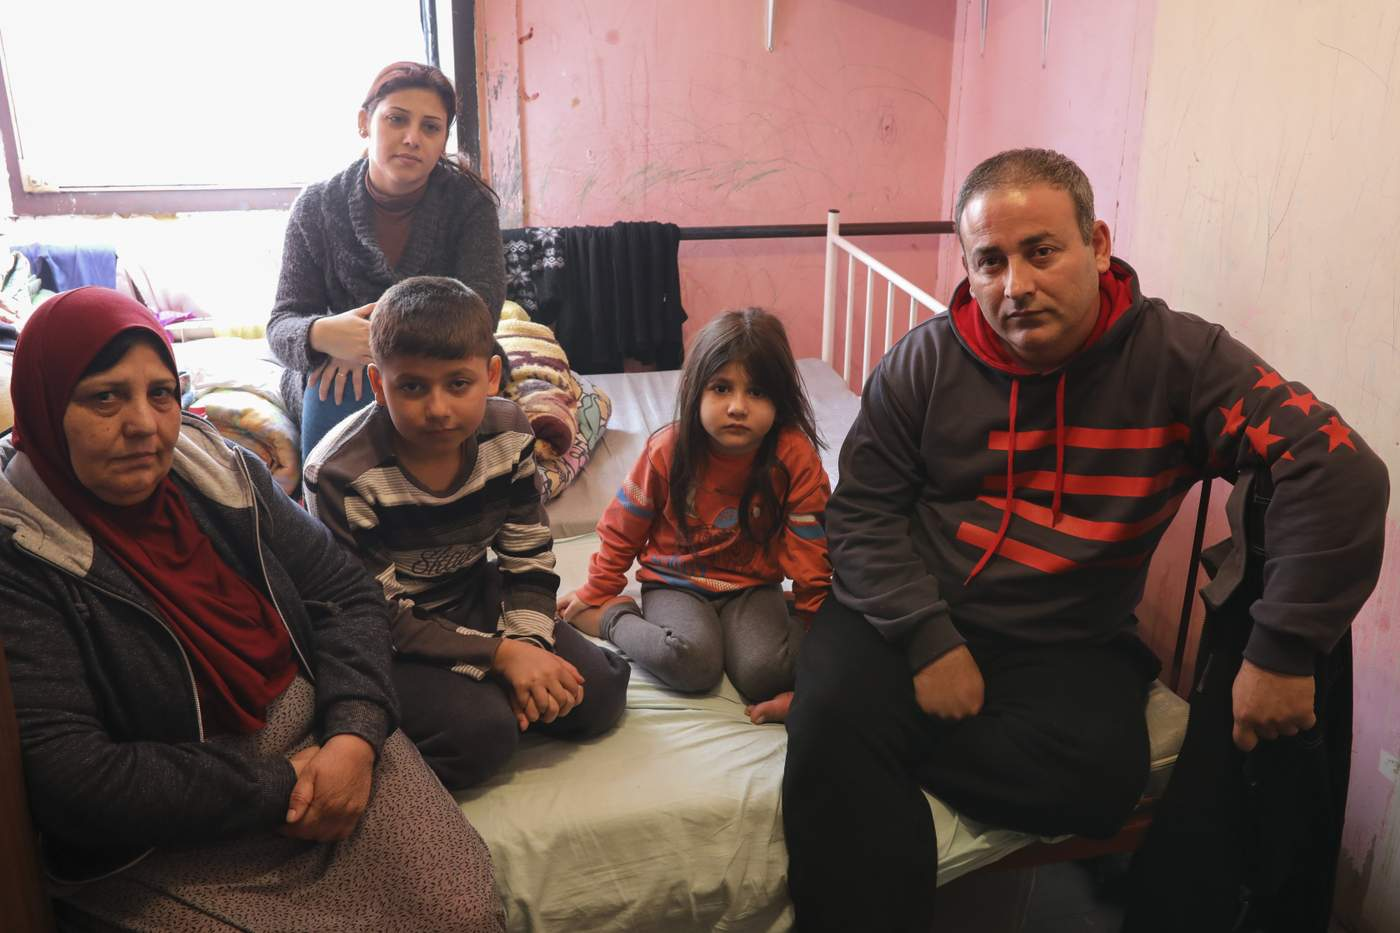 Aras Mahmoud, his wife, mother and children in their bedroom in a refugee centre in Krnjaca, Belgrade.